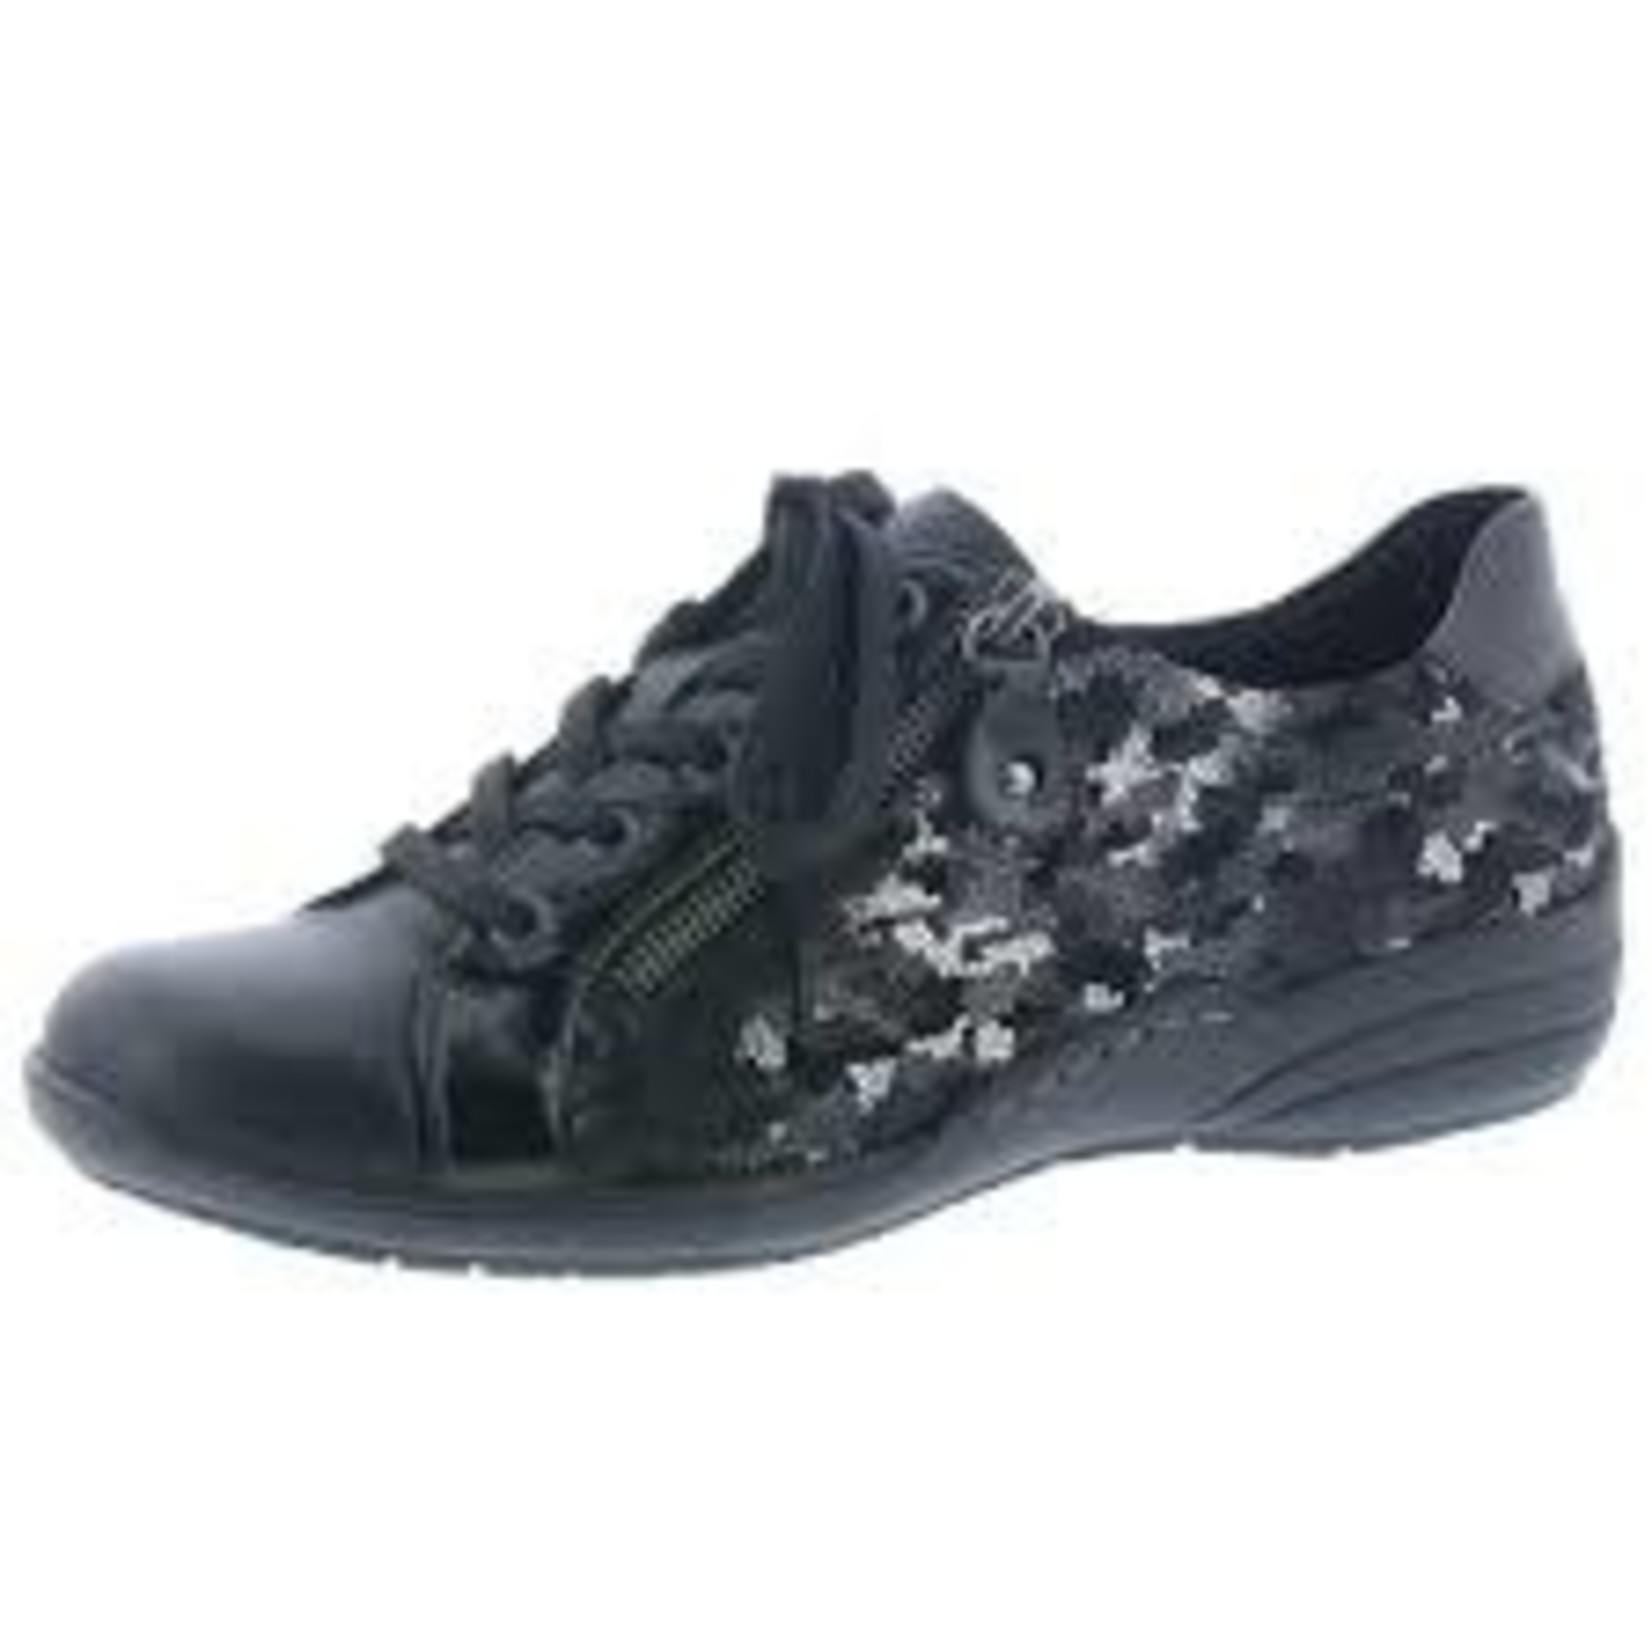 Remonte Remonte R7629-02 only size 42